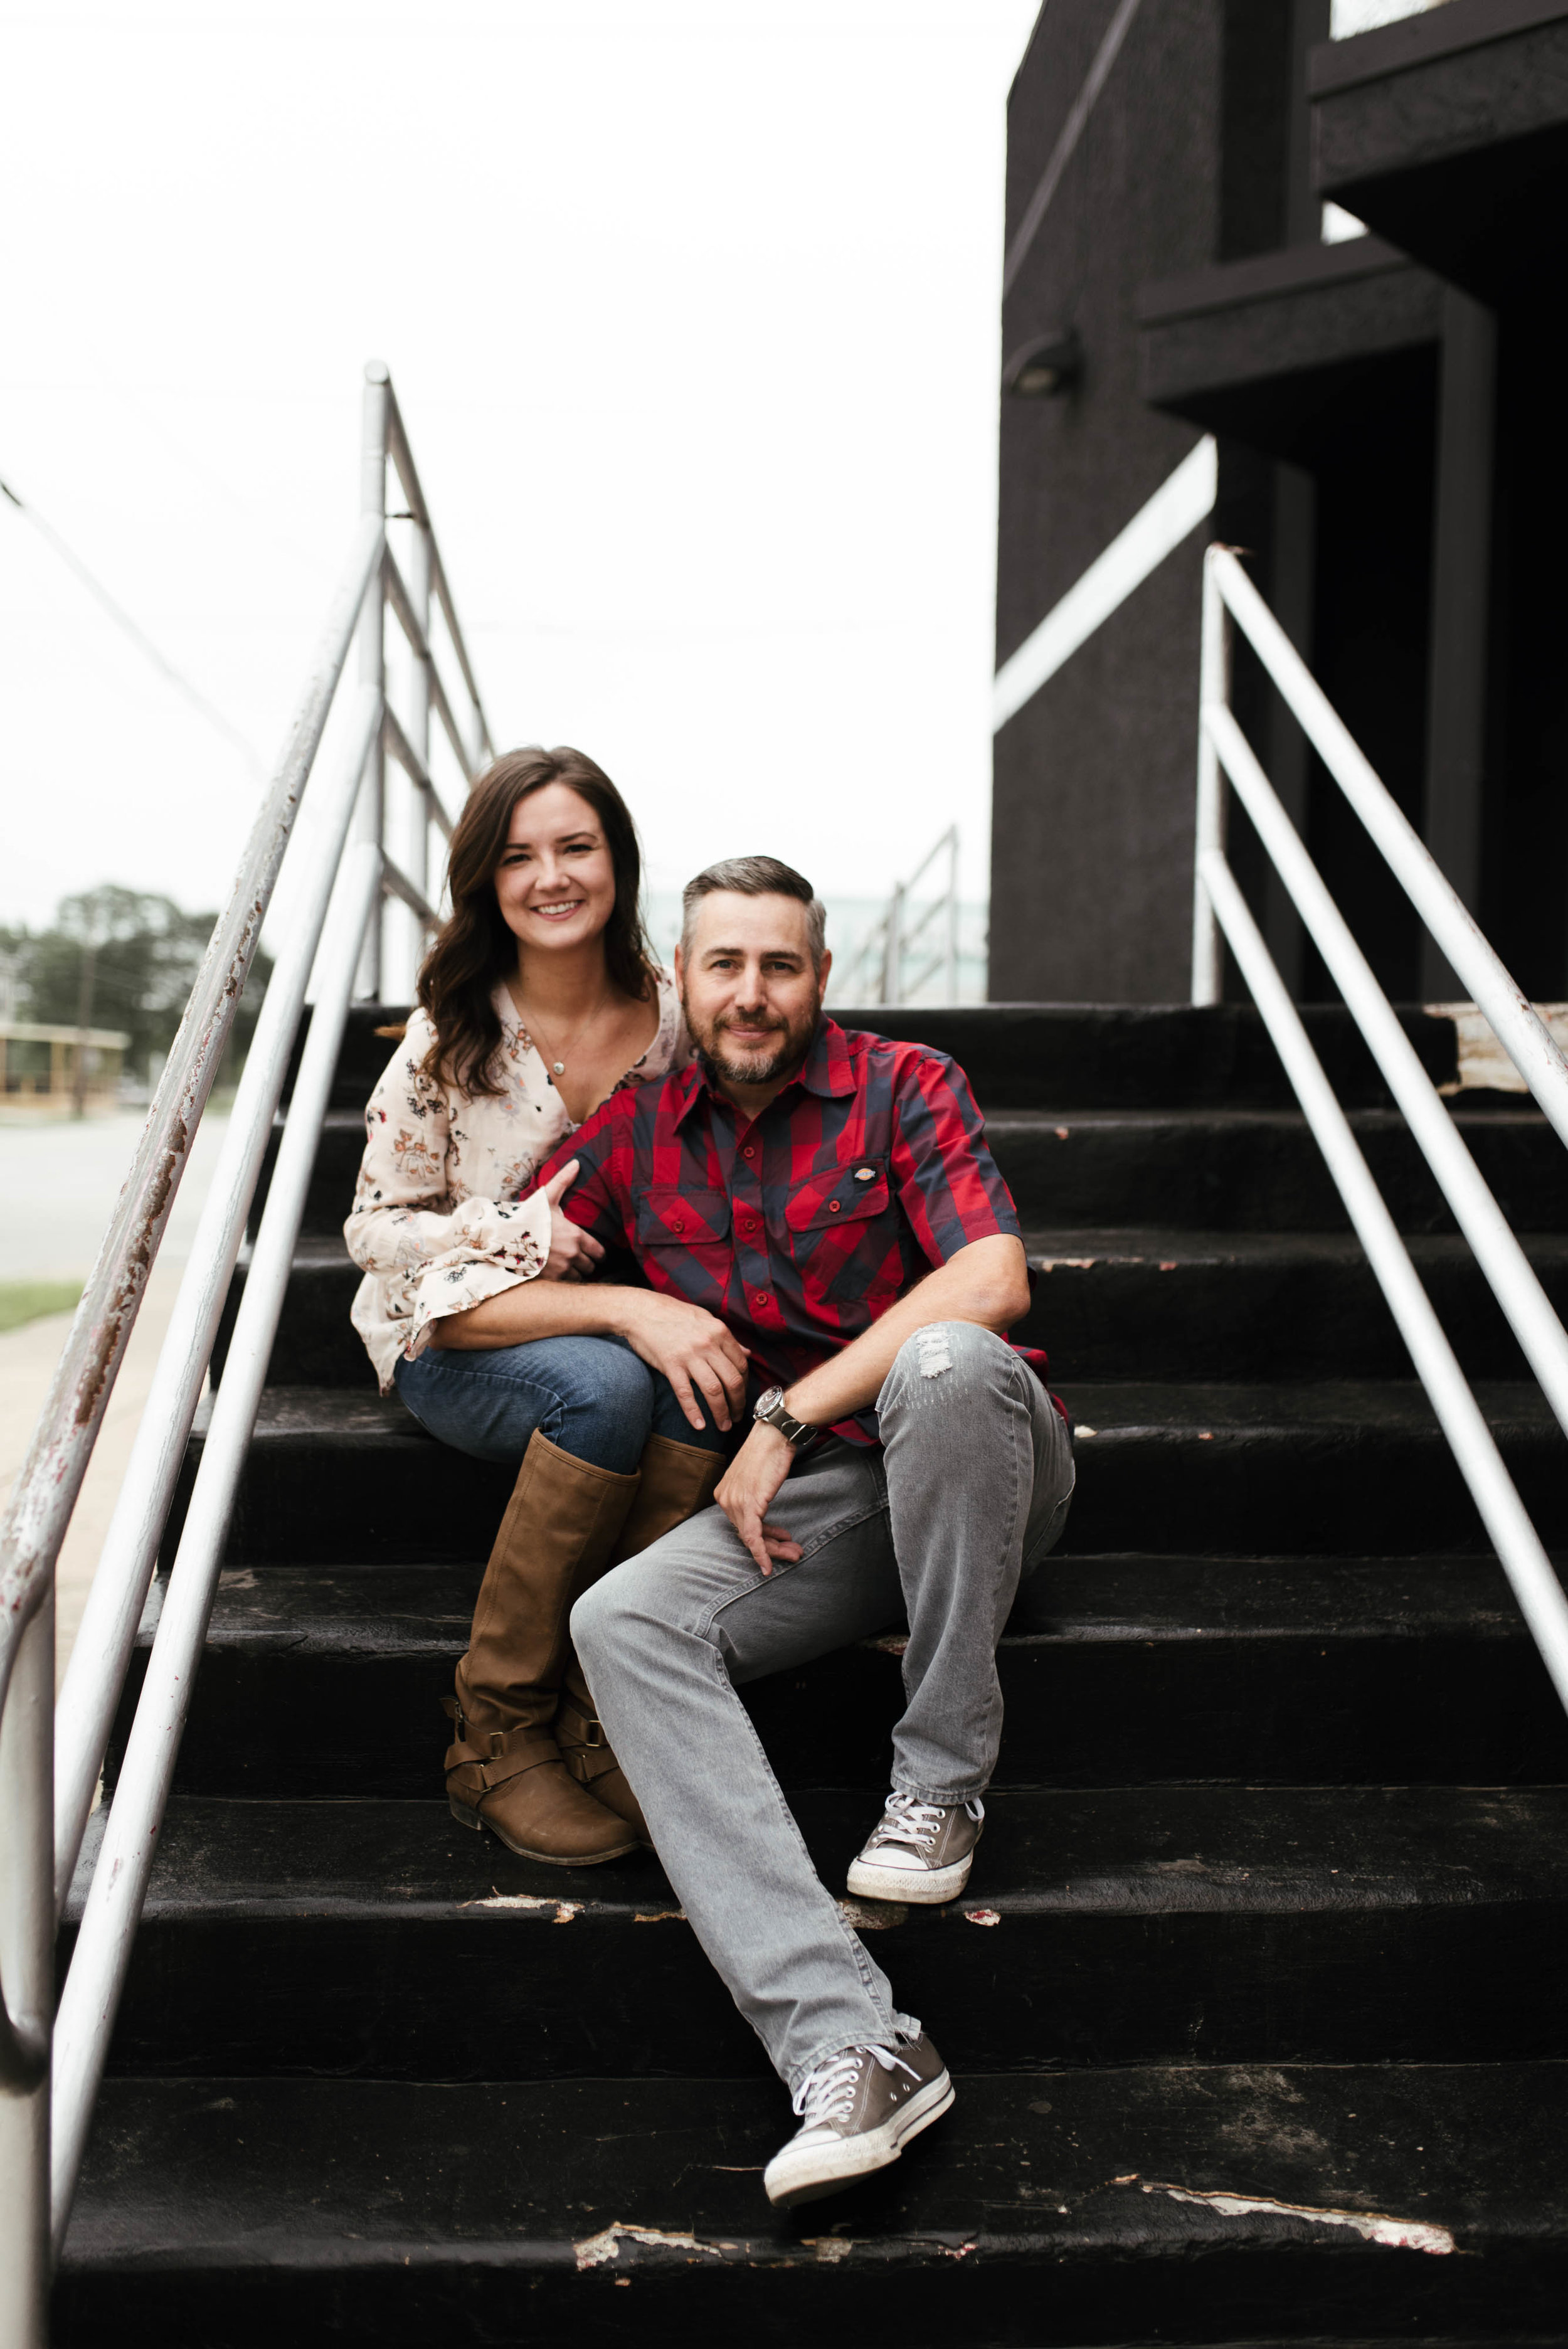 east end engagement session, houston, tx | Fort Worth photographer | www.jordanmitchellphotography.com